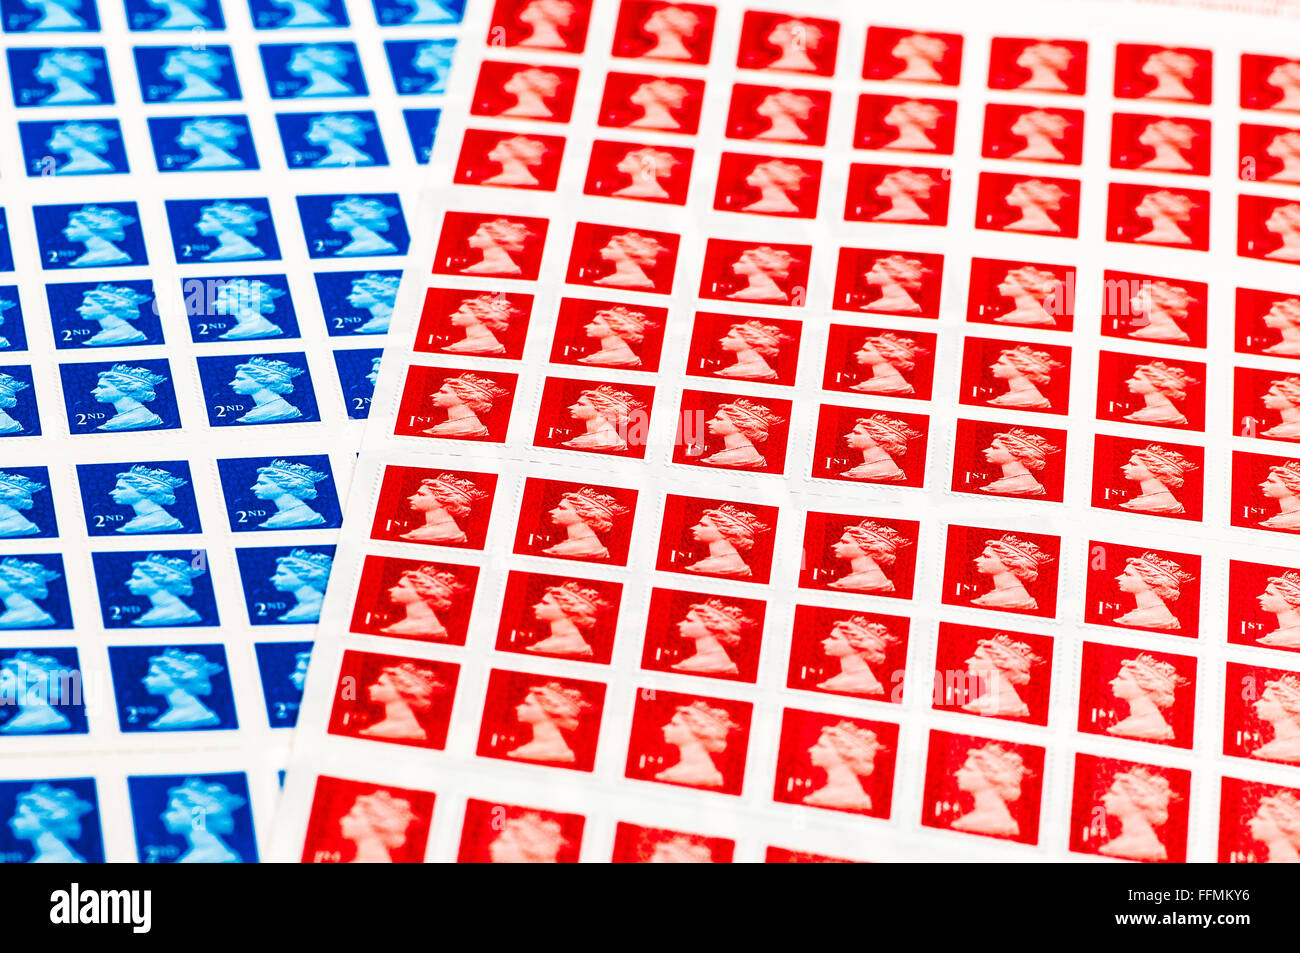 Sheets of UK 1st and 2nd class stamps. - Stock Image